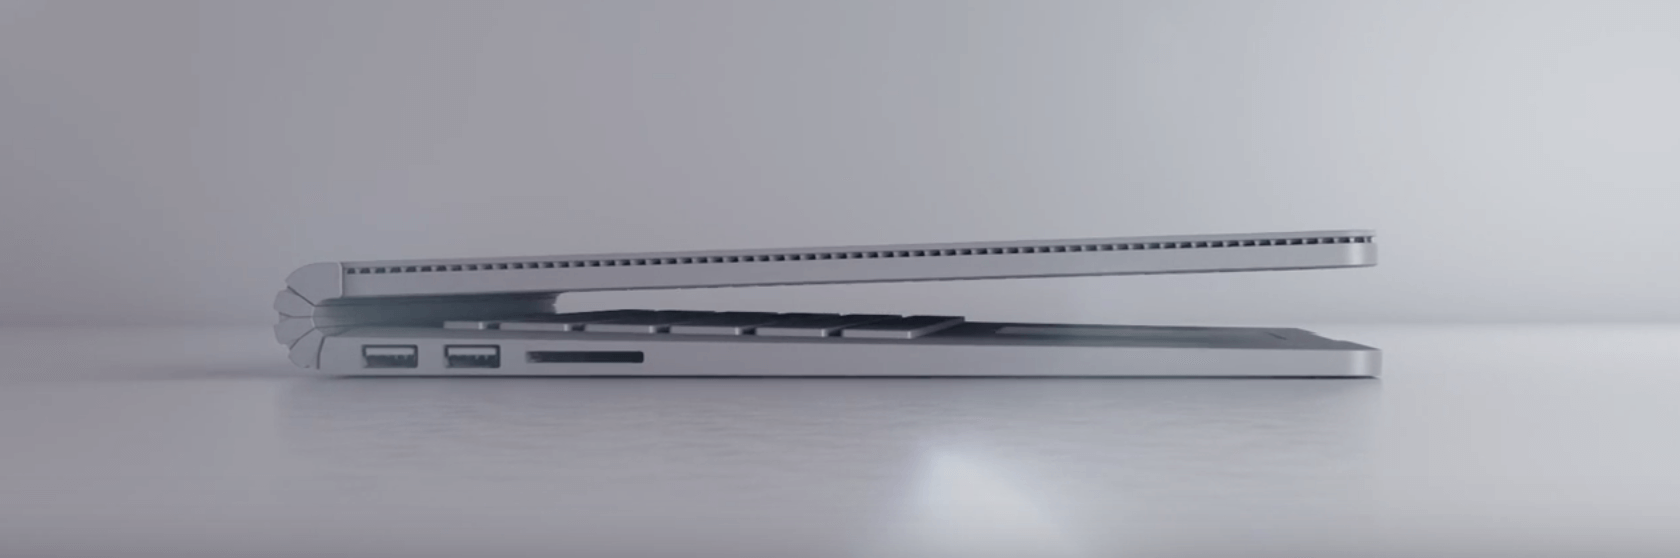 Microsoft Surface Book vorgestellt 1